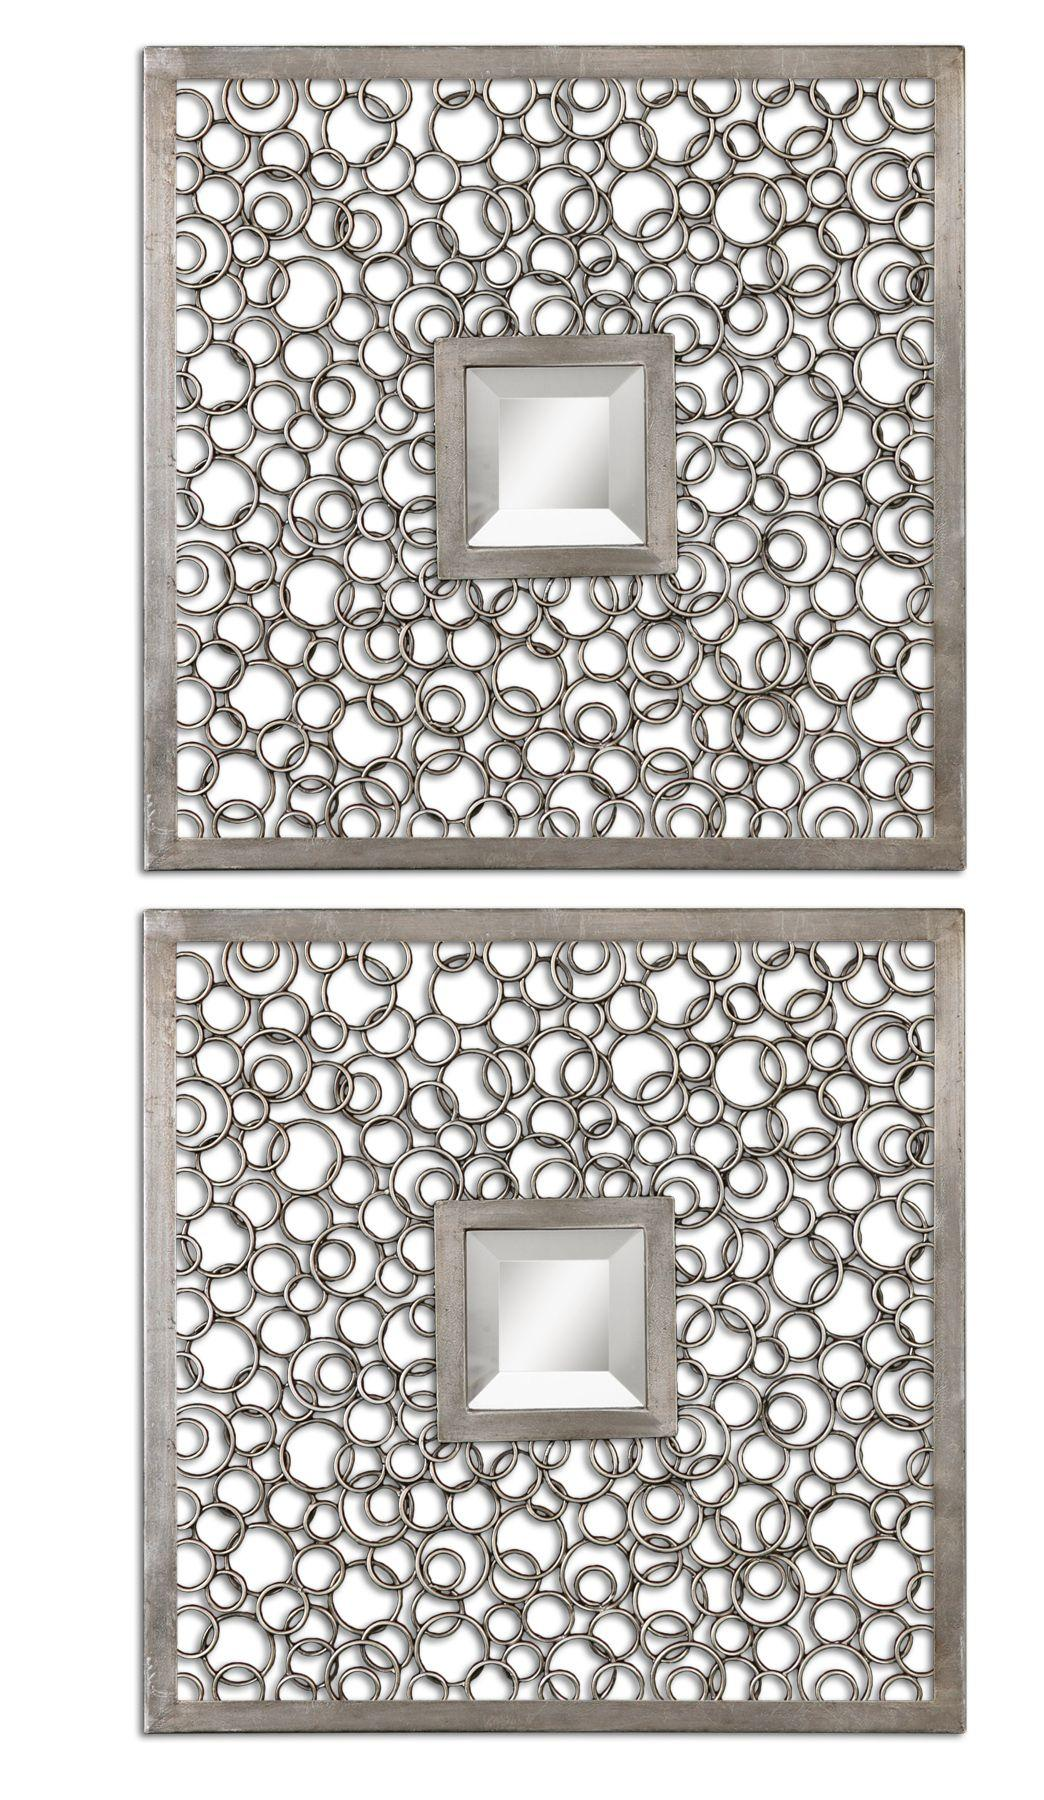 Uttermost Mirrors Colusa Squares Set of 2 - Item Number: 07622